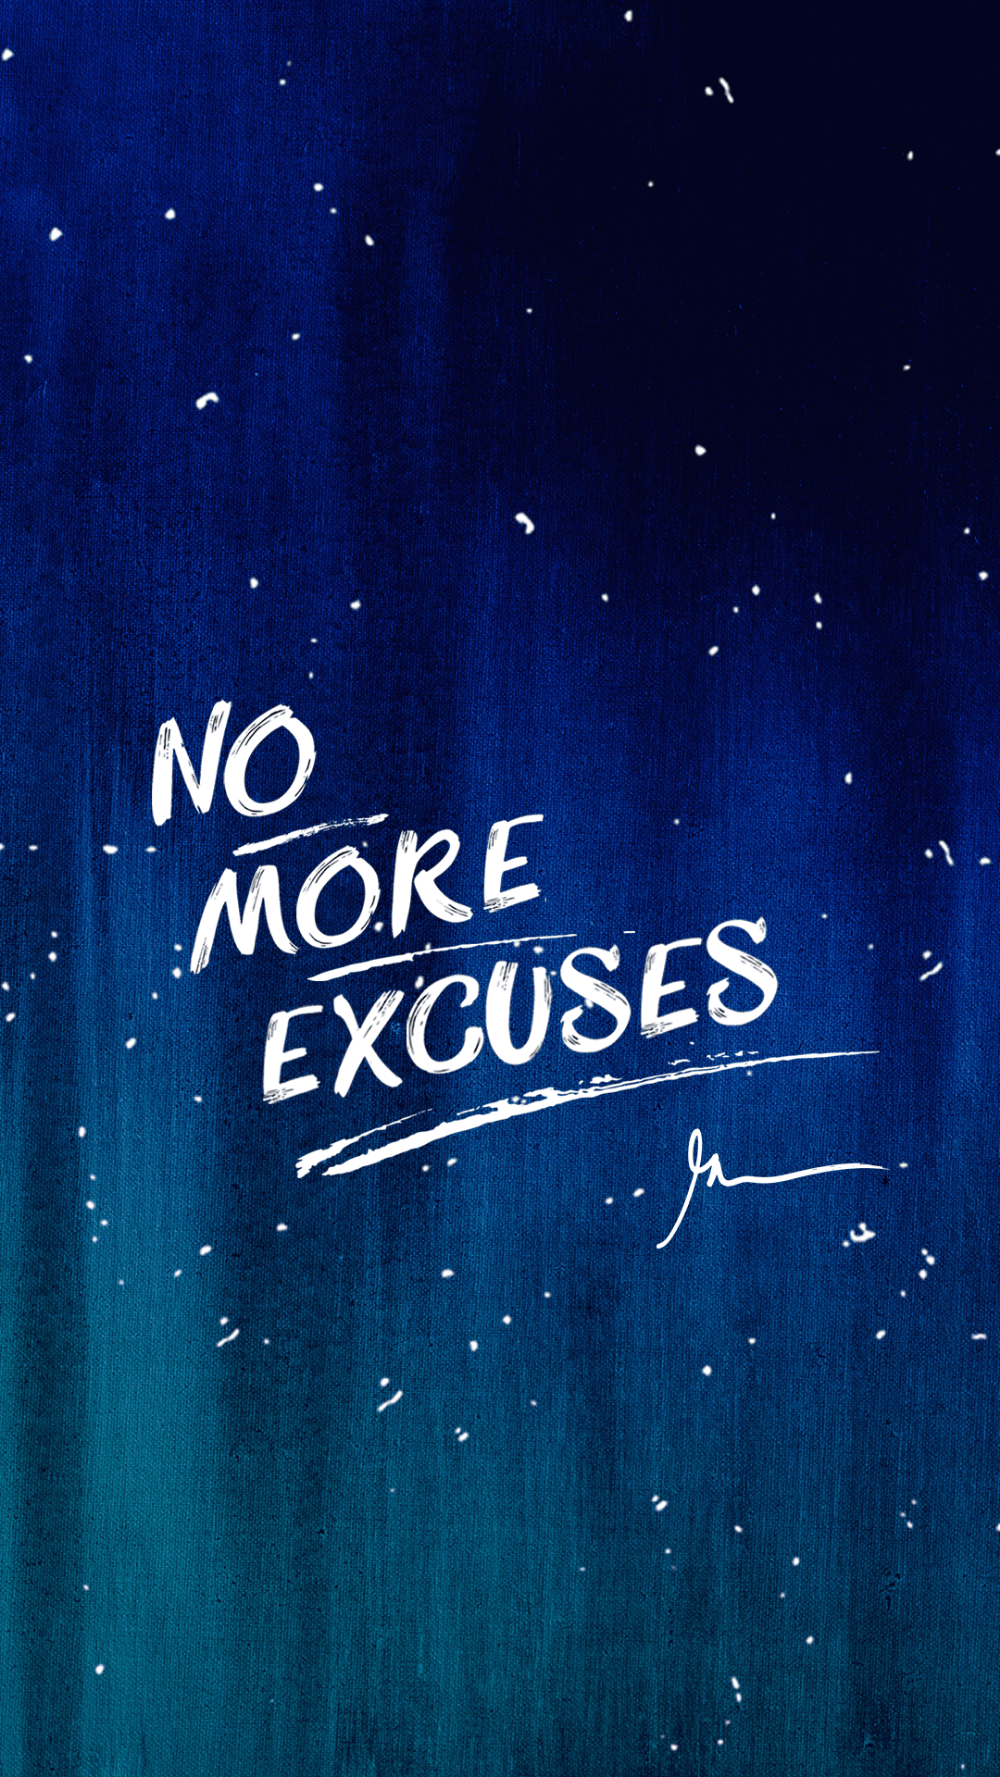 Wallpapers Hard Work Quotes Hustle Quotes Excuses Quotes